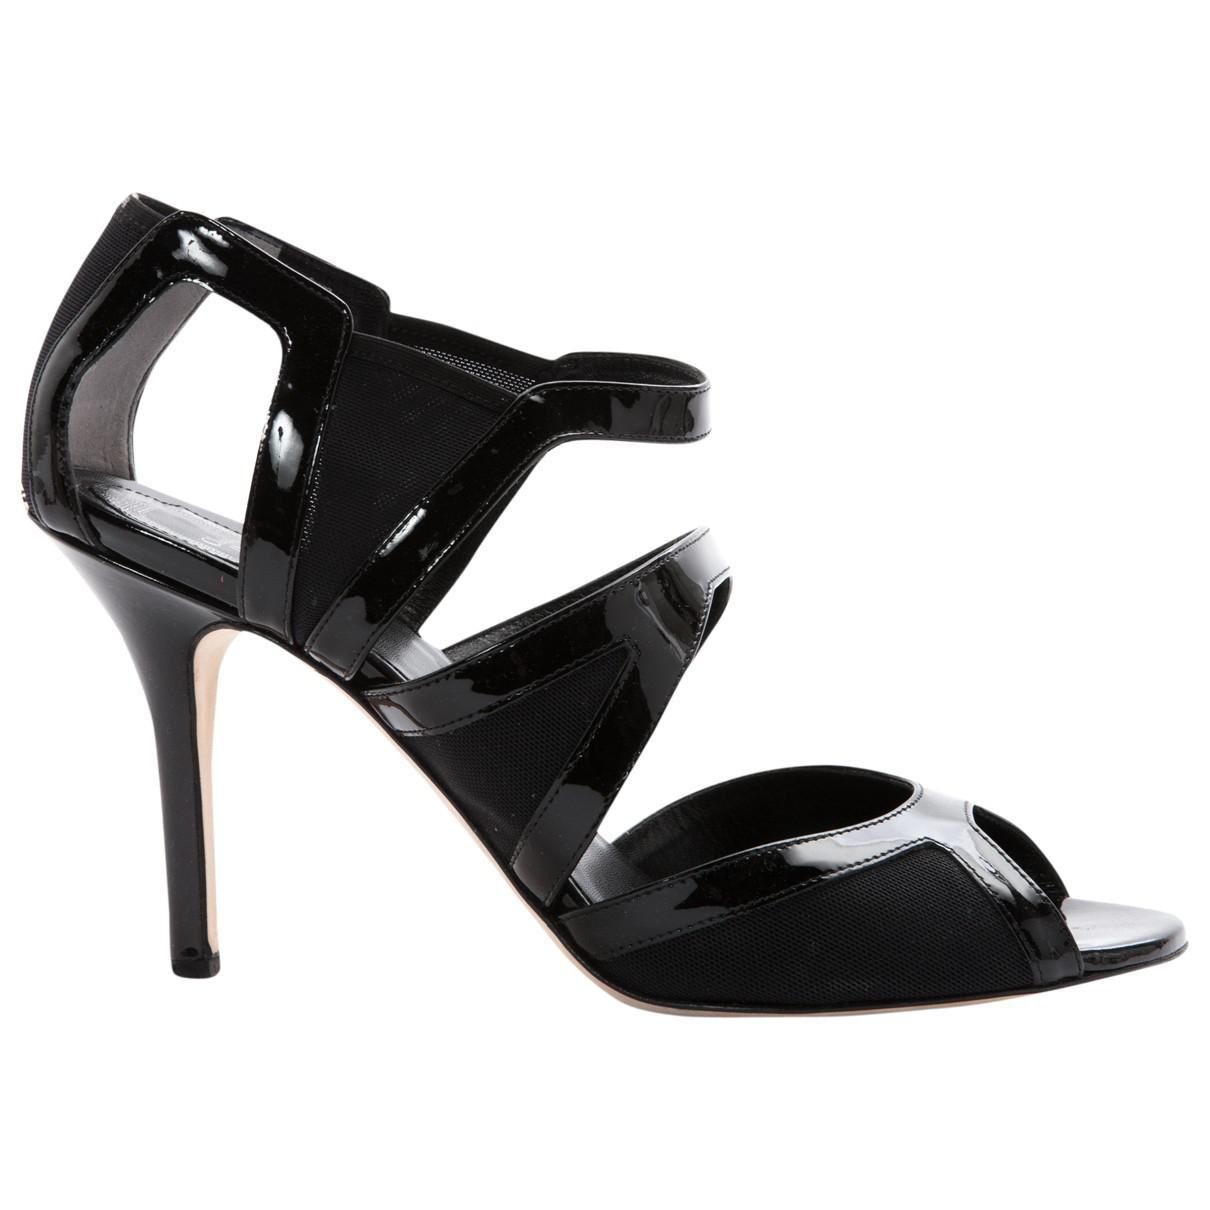 Pre-owned - Sandals Dior Buy Cheap Extremely For Cheap Discount ScNpis